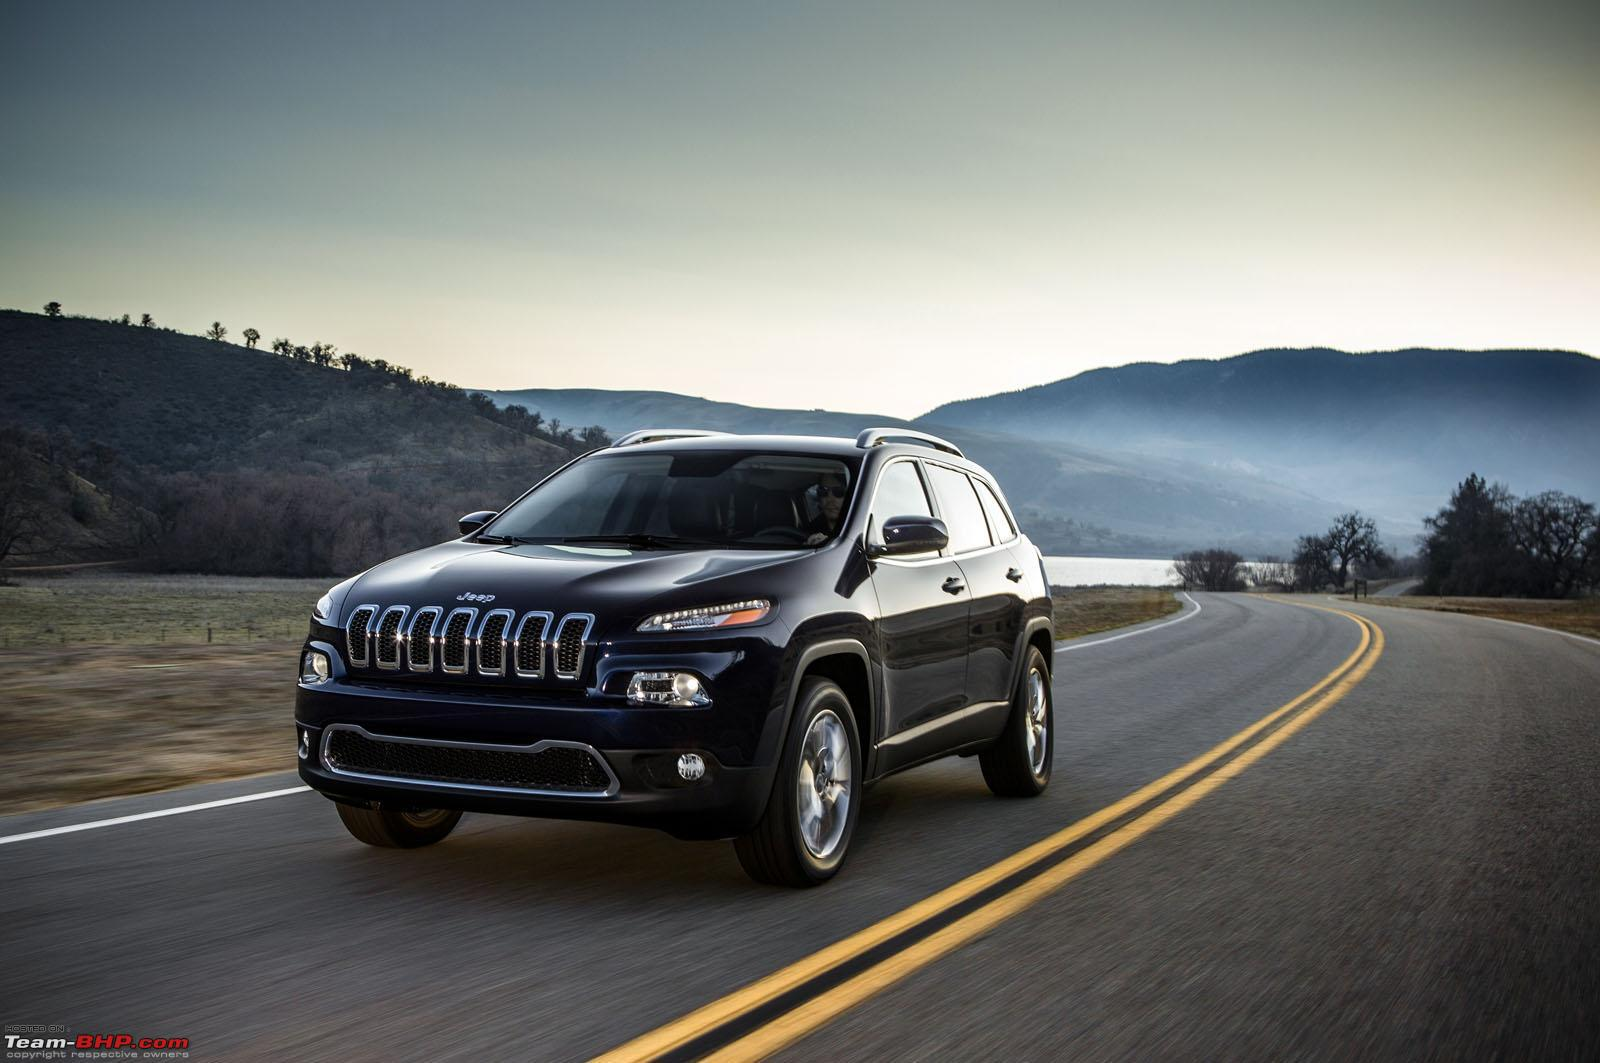 2014 jeep cherokee unveiled jeep liberty replacement team bhp. Cars Review. Best American Auto & Cars Review